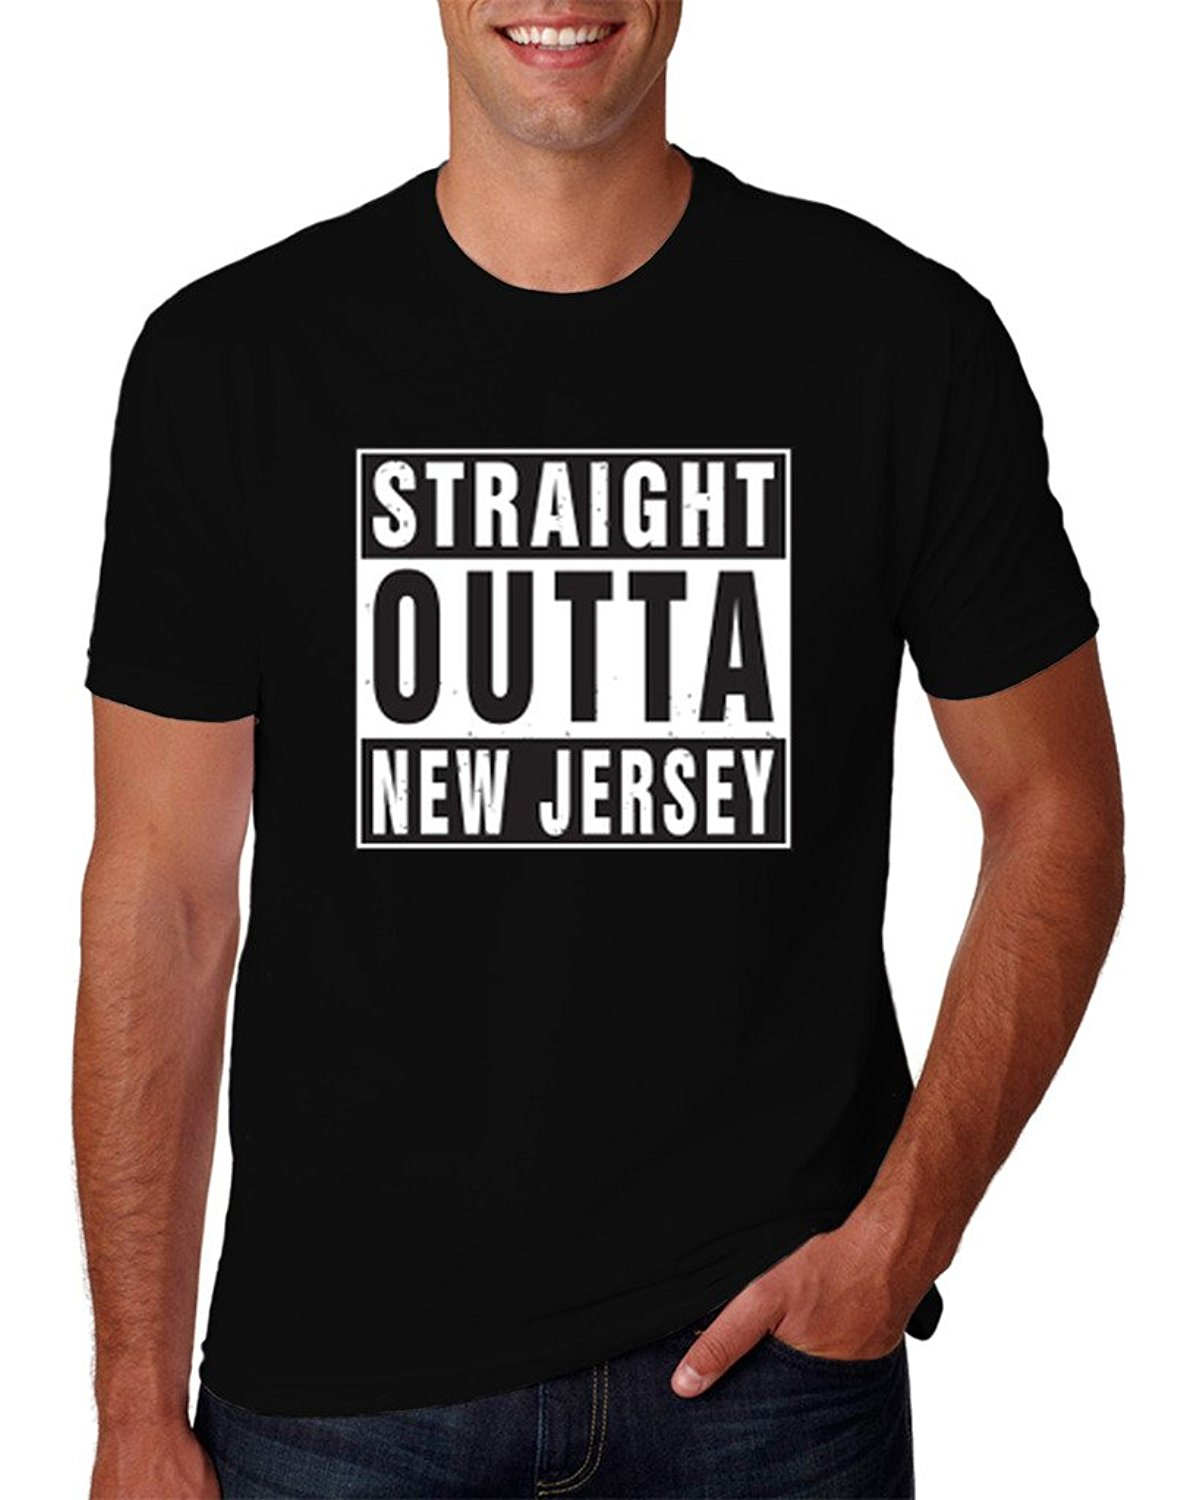 Straight Outta New Jersey Compton N.W.A. Parody T-Shirt Short Sleeves Cotton T Shirt Free Shipping TOP TEE Personality